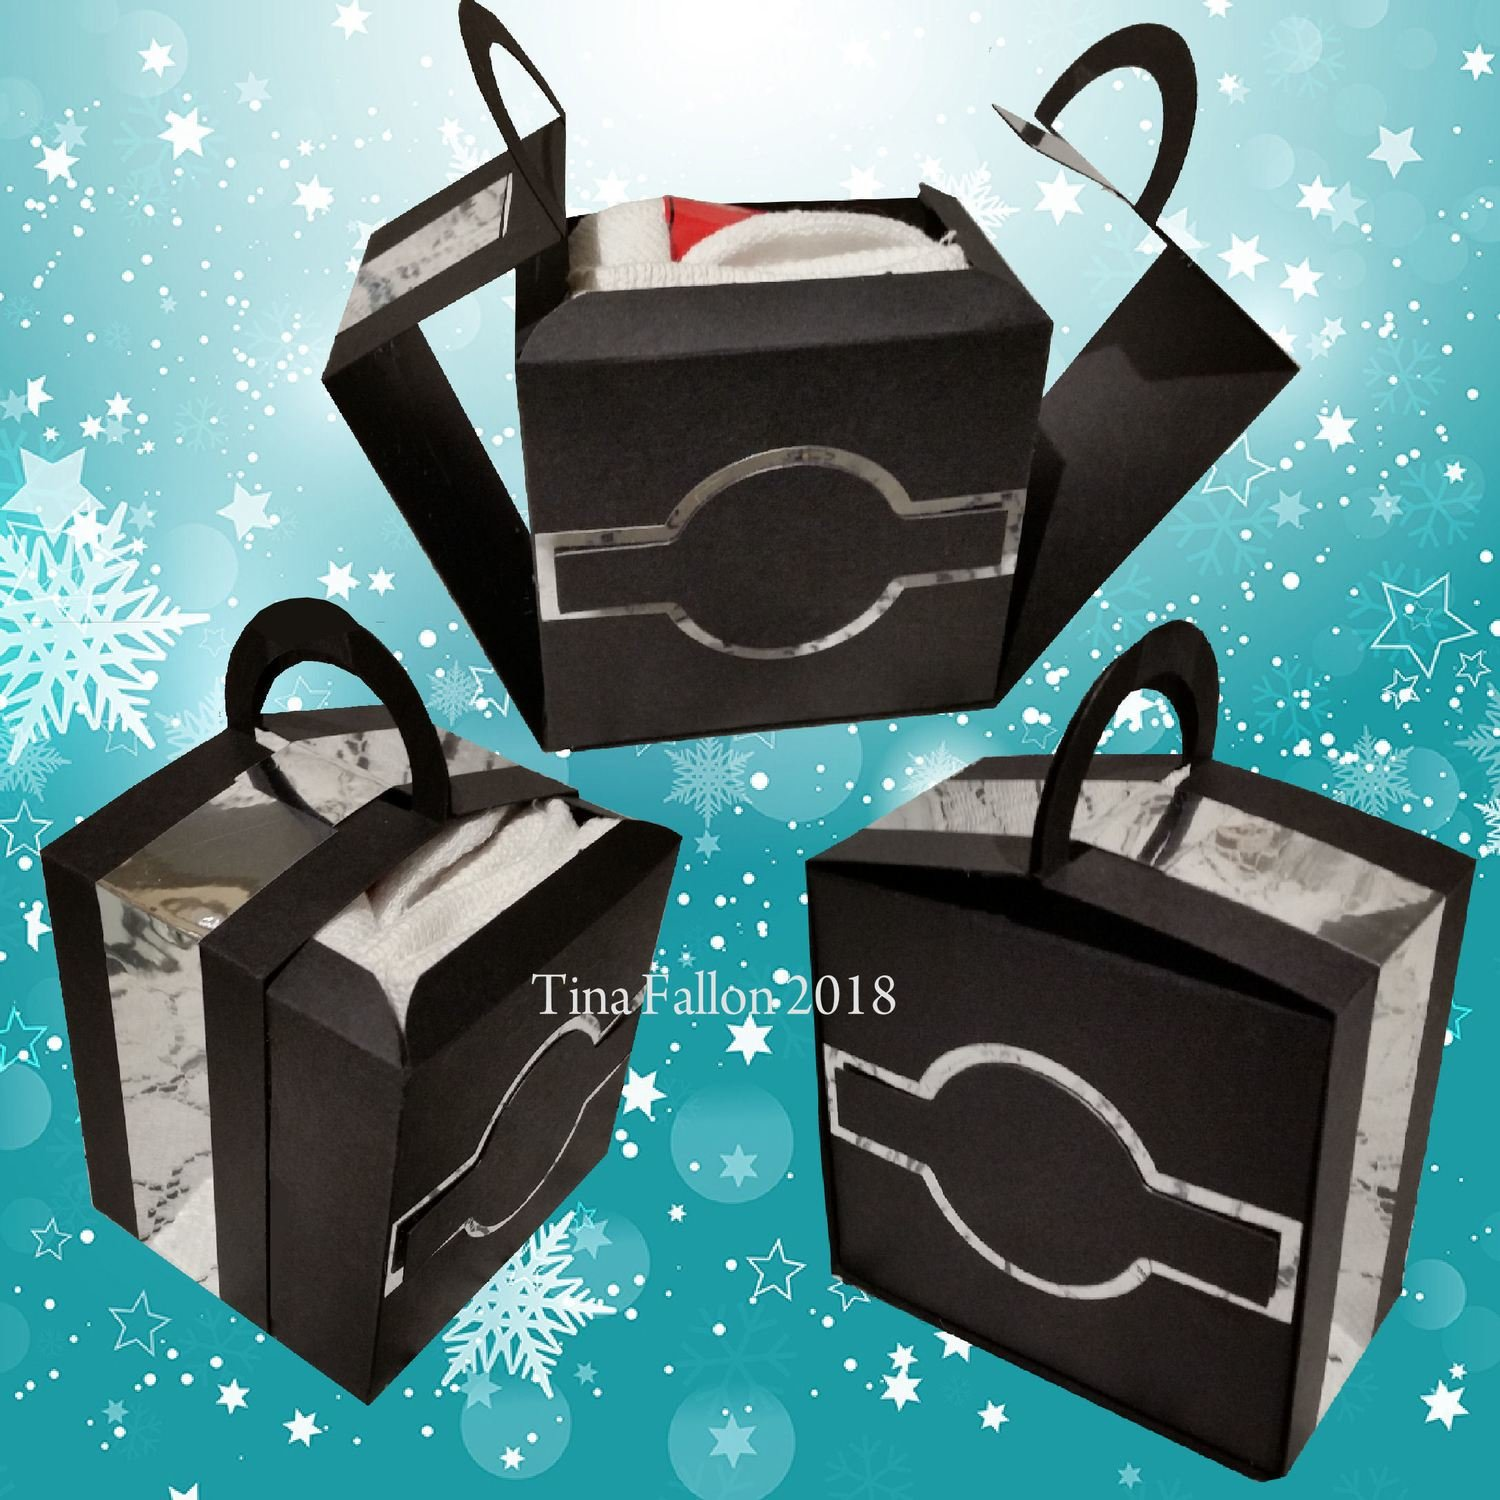 Gift Box with removeable Drawer - Gift Carrier Display Box